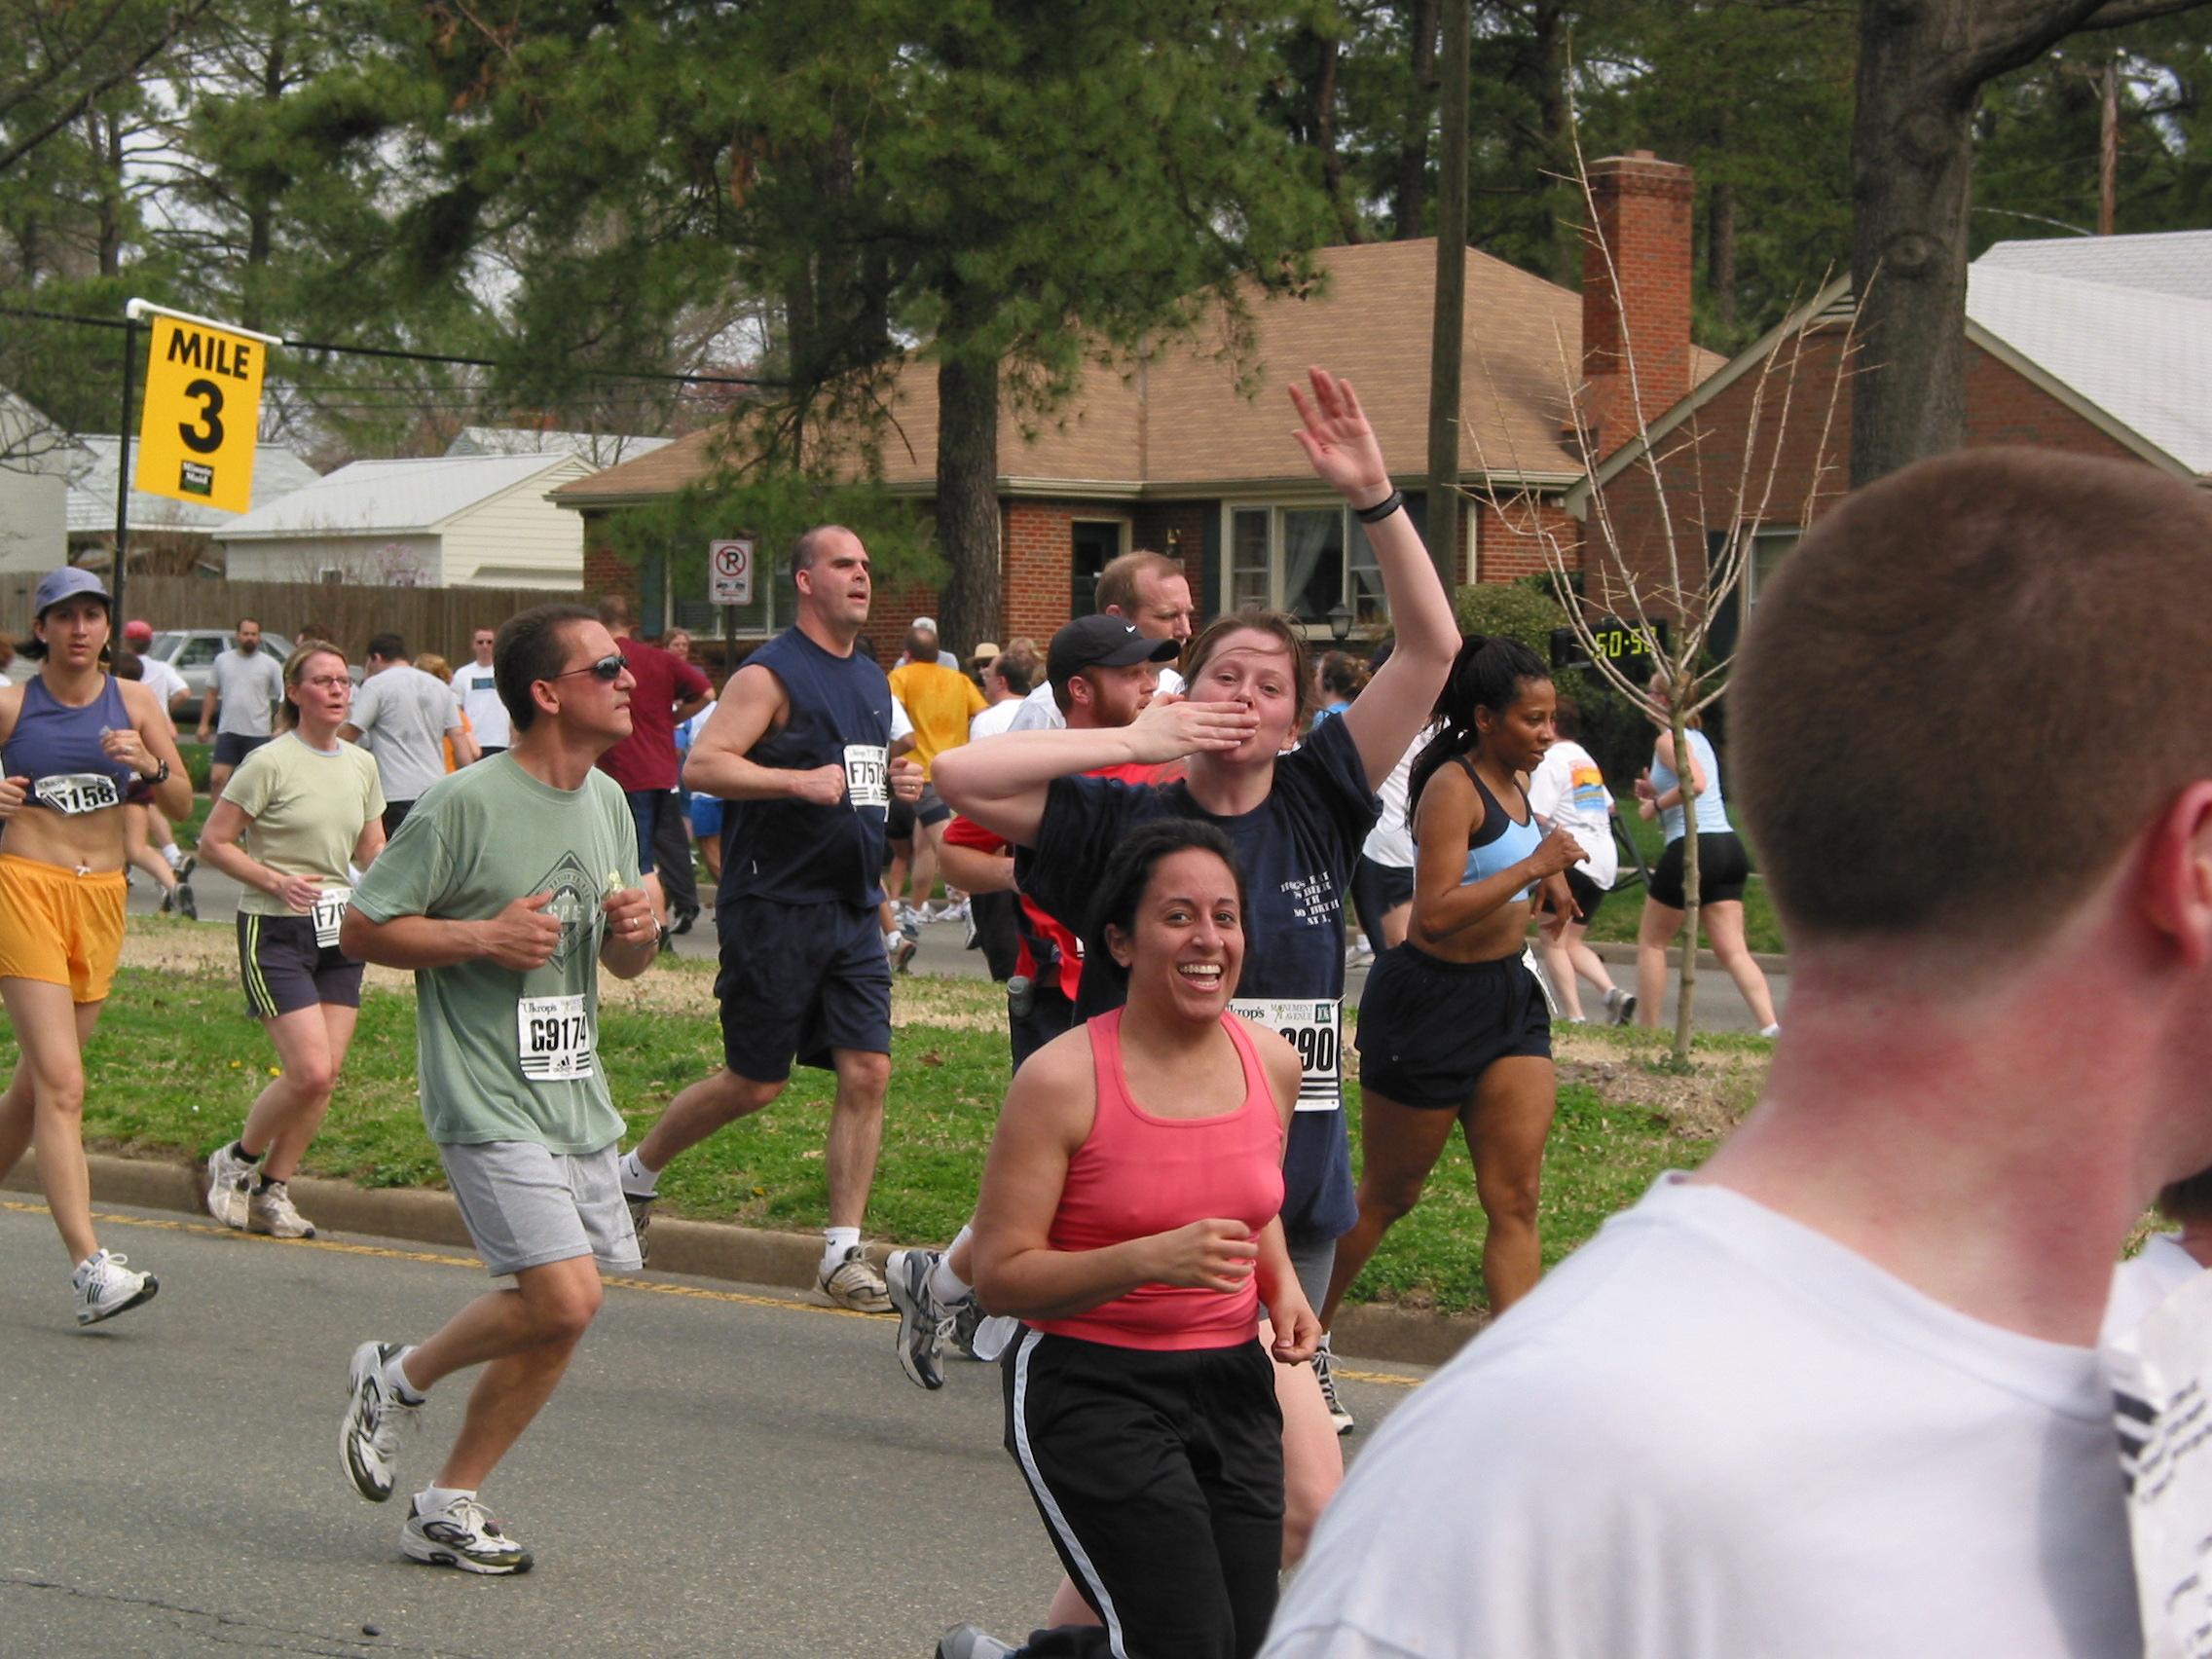 In March 2004, I ran a 10k after a 10 week coach to 10k program. I huffed and puffed the entire time. I don't think I have ever been that red faced in my life.